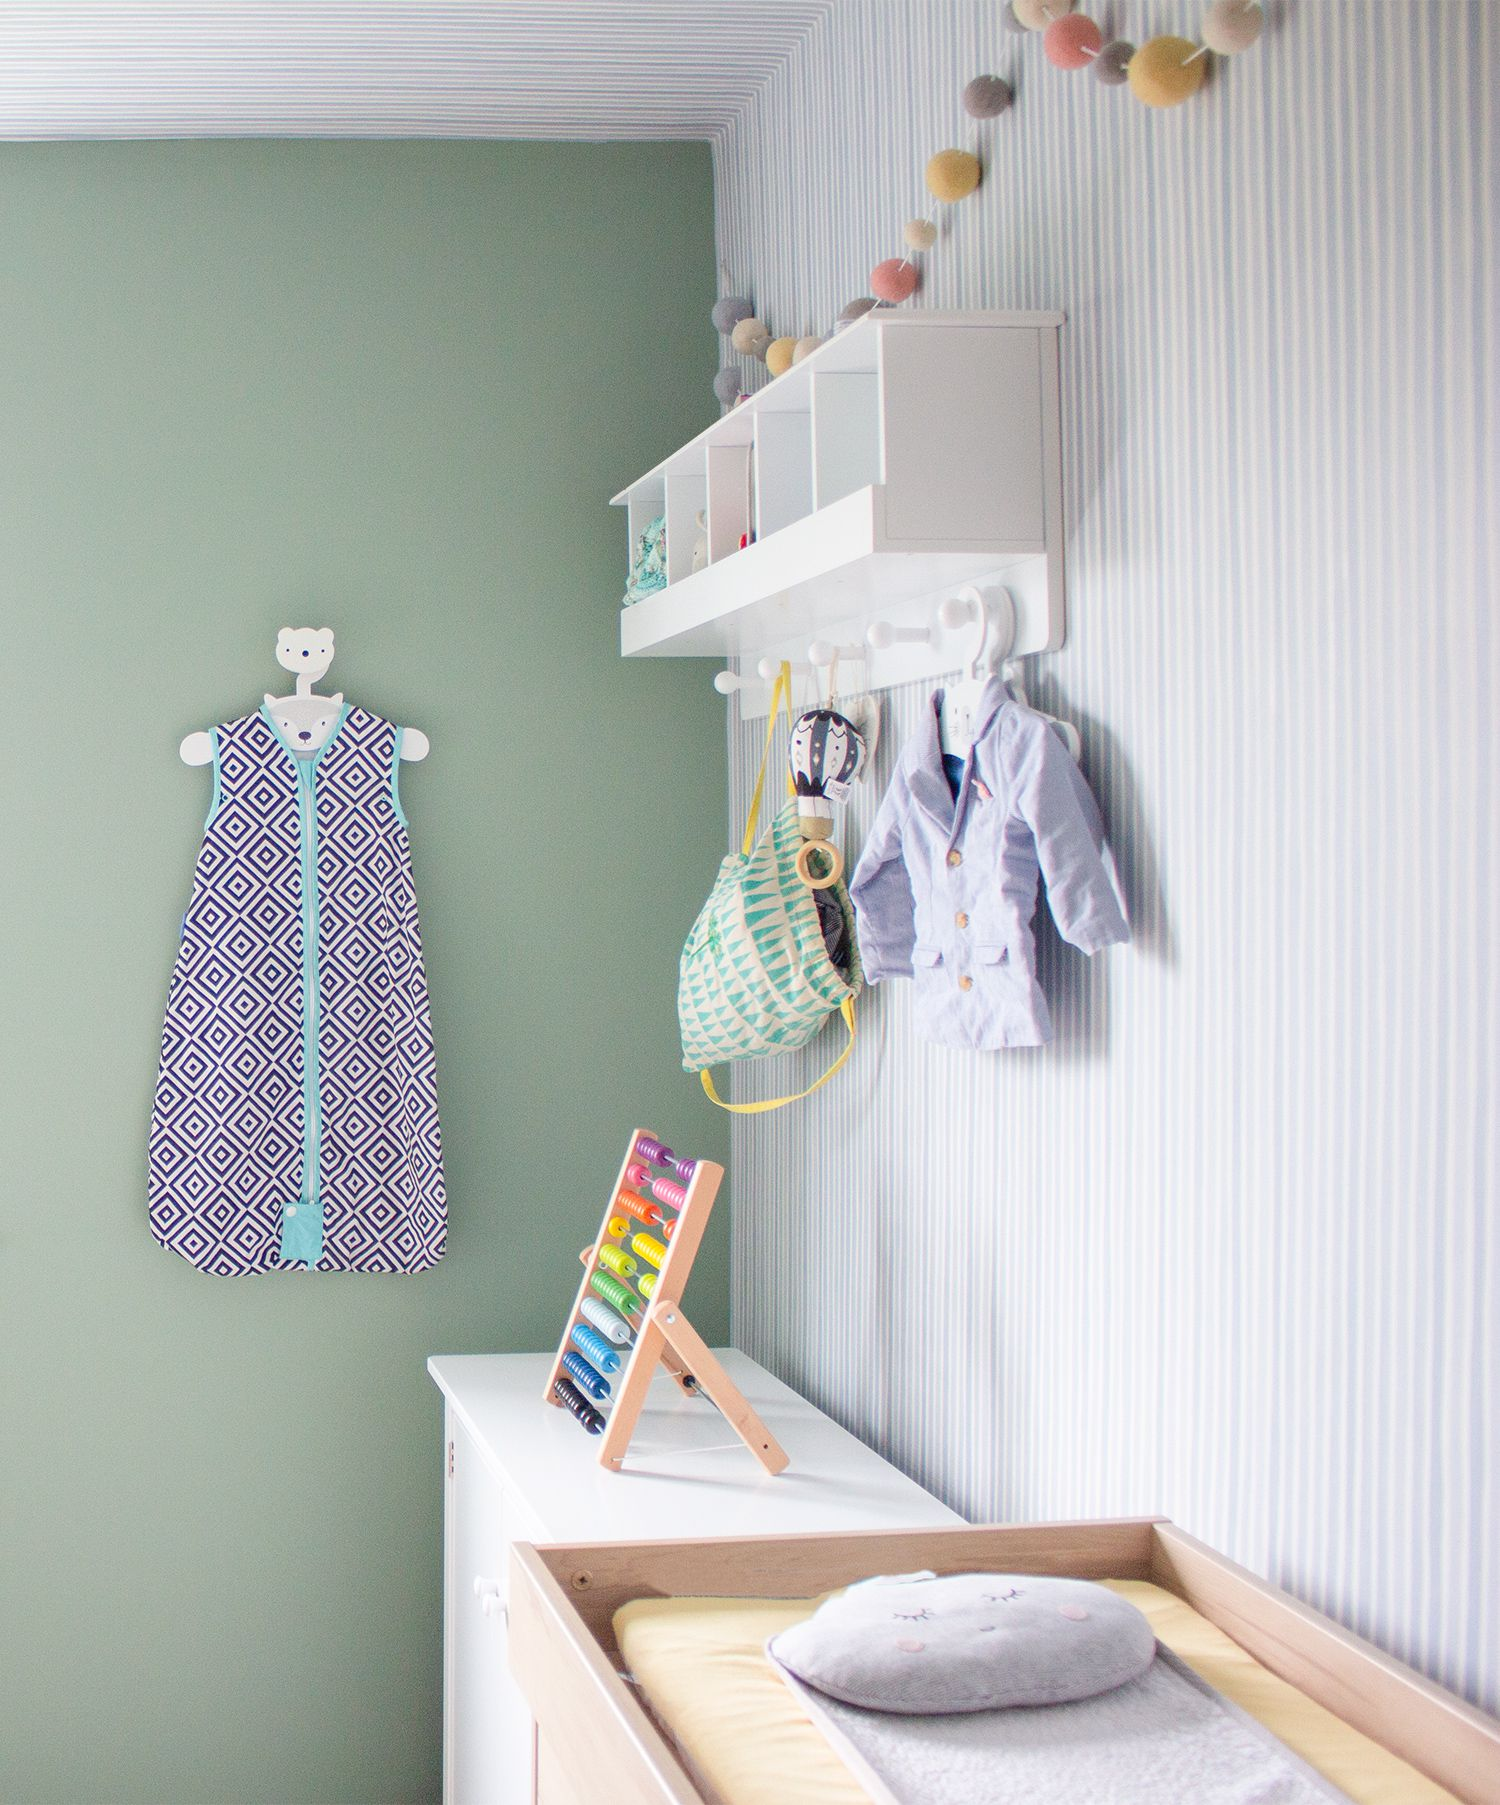 A view of the striped wallpaper wall with a white dresser and shelving above.